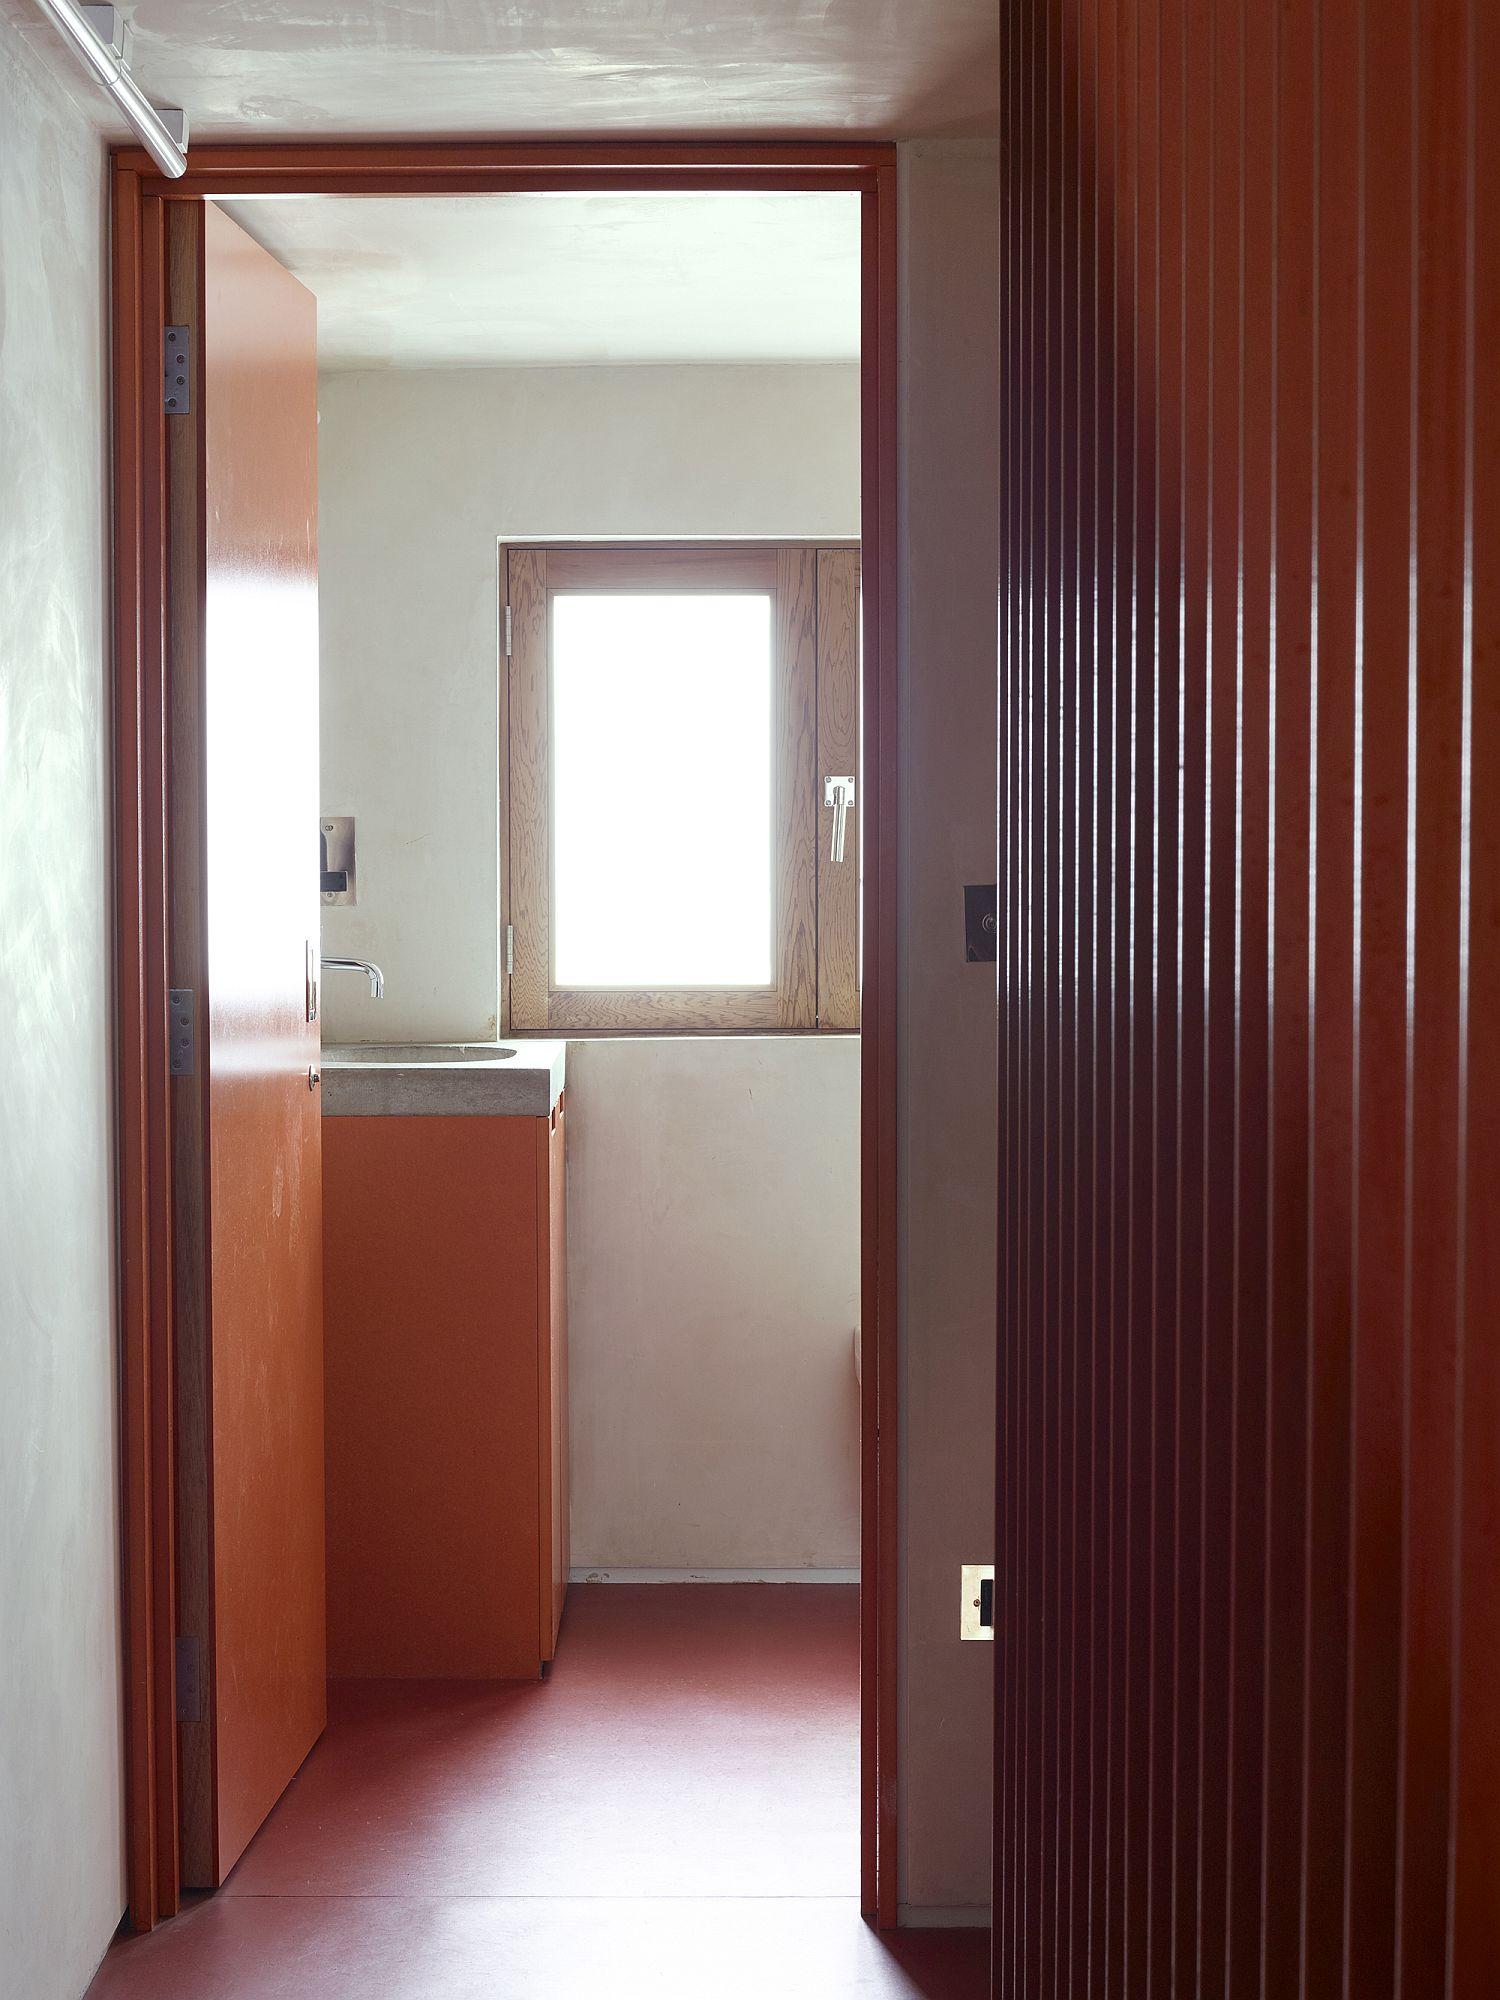 Exquisite use of orange throughout the revamped Gate House